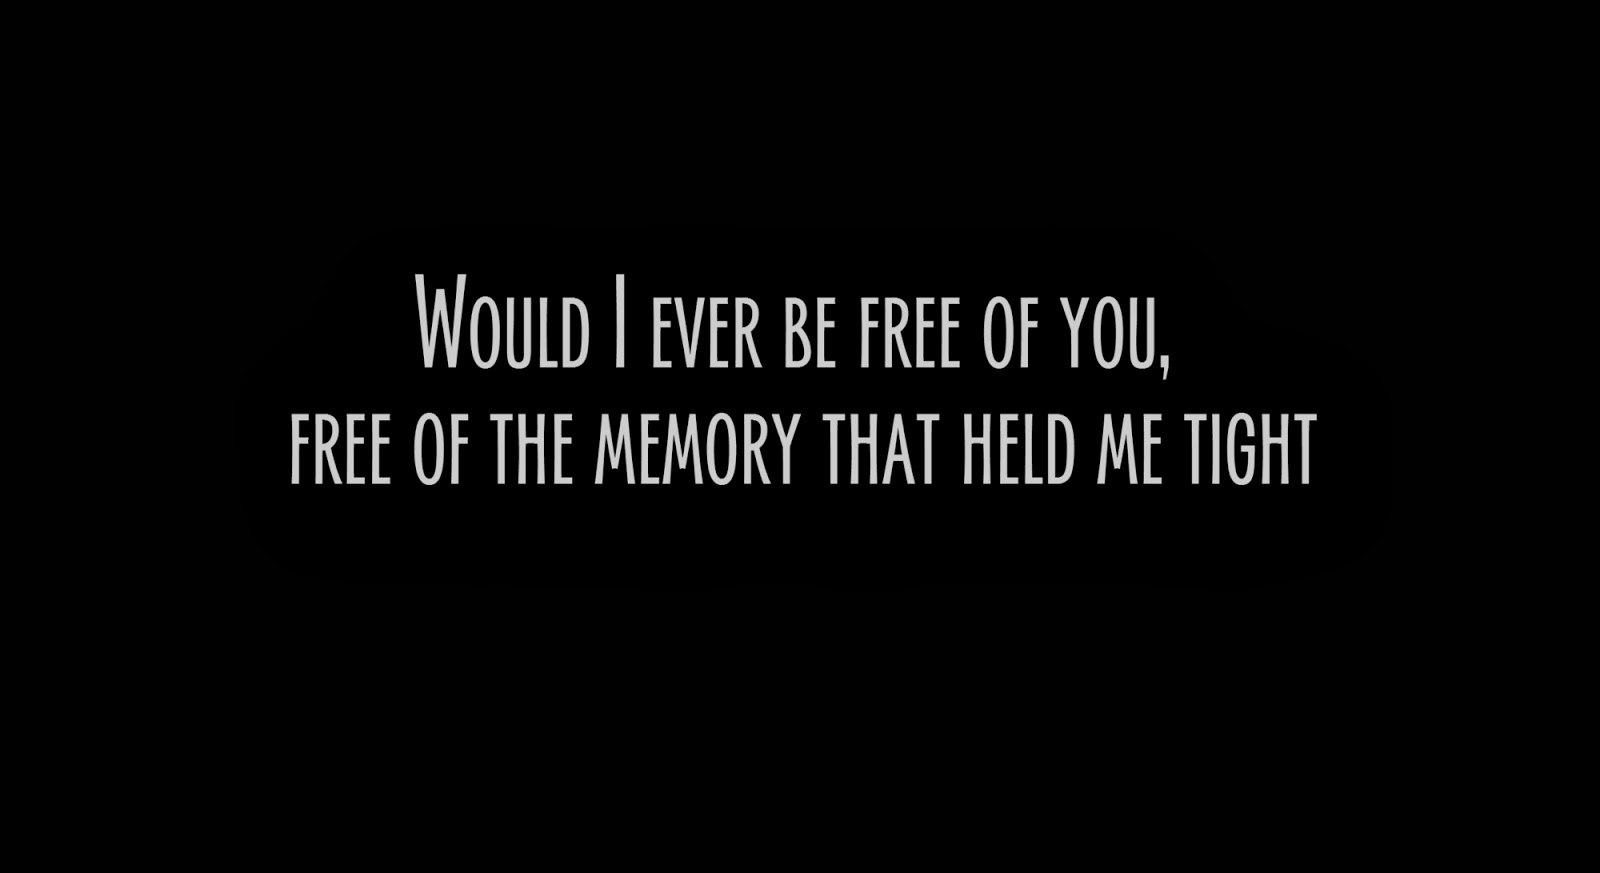 Would I ever be free of you, free of the memory that held me tight